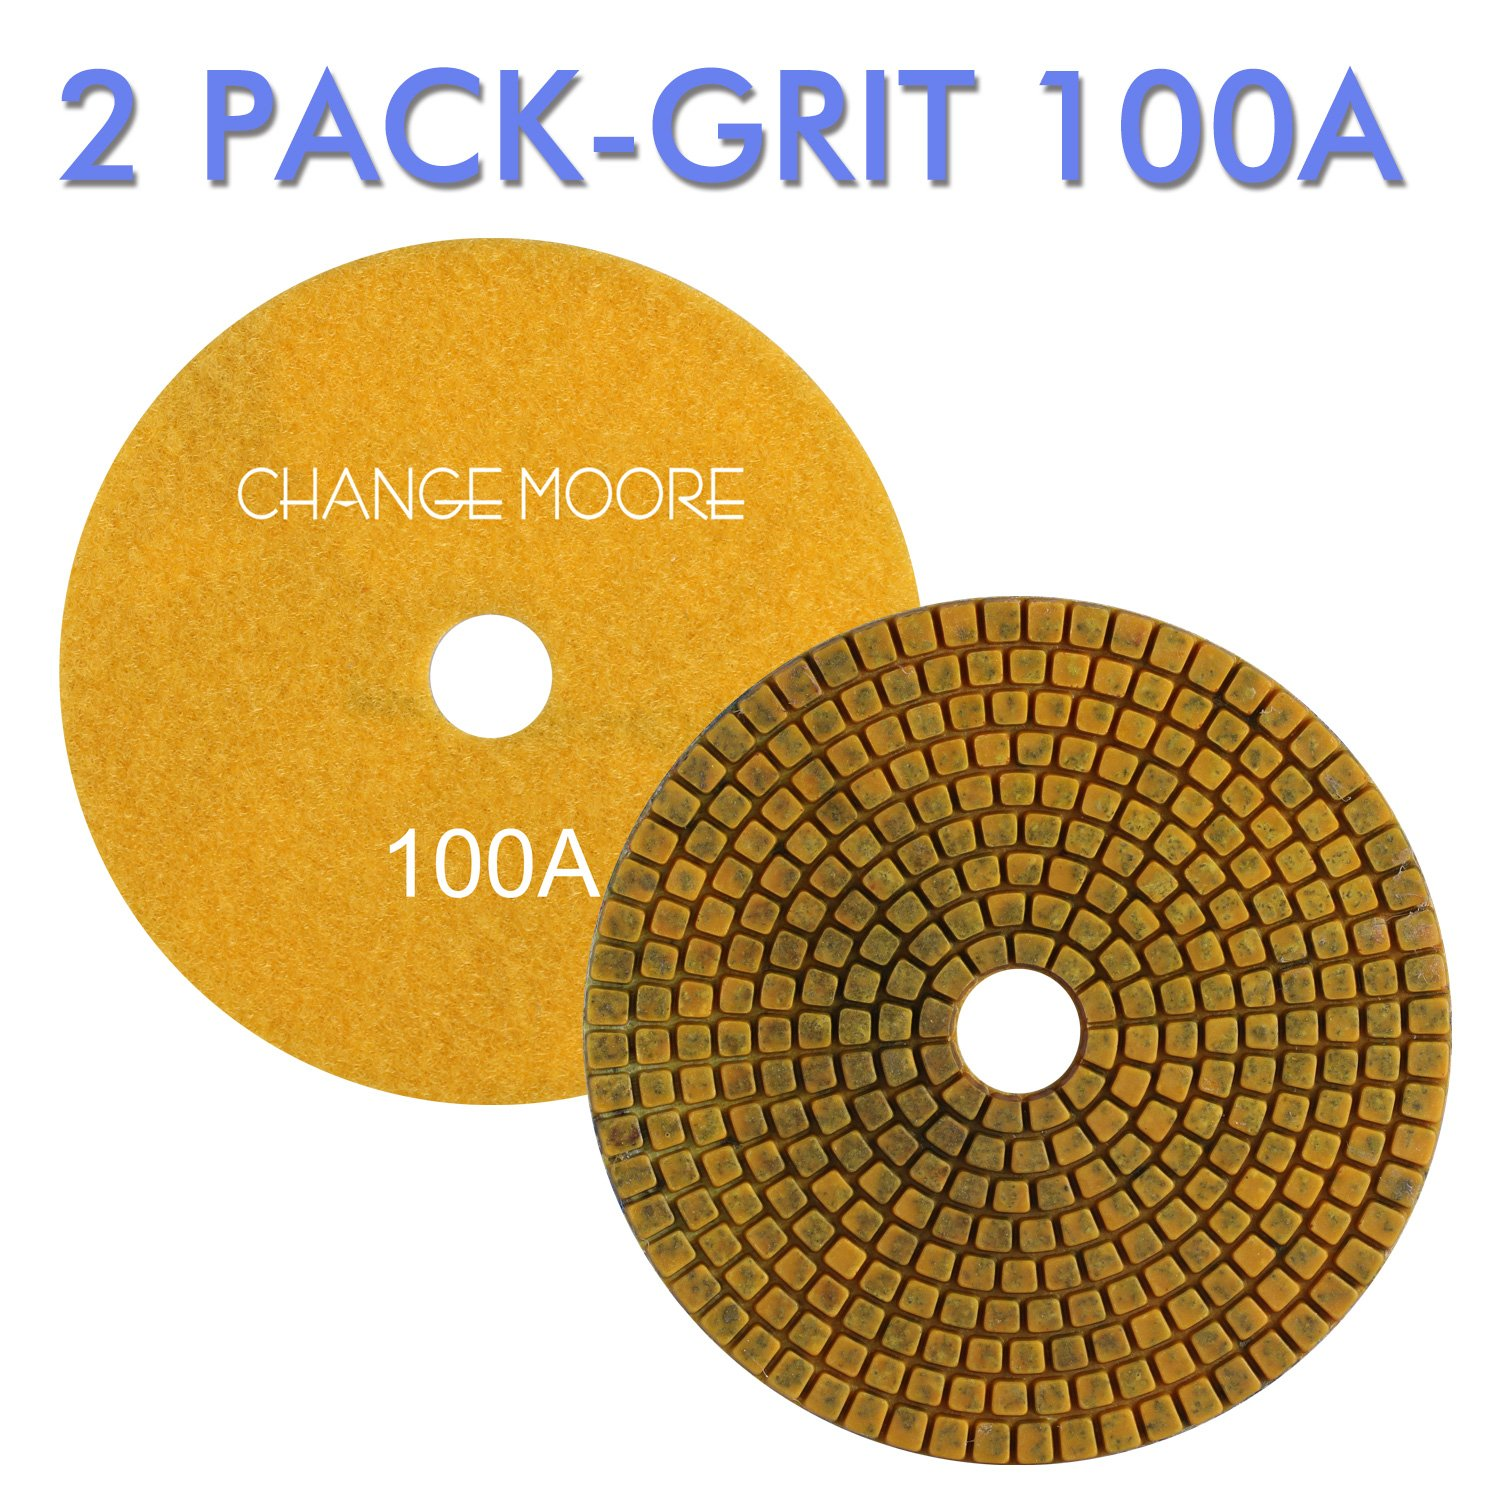 CHANGE MOORE Wet Diamond Polishing Pads 5 Inch for Marble Granite Travertine Terrazzo Concrete Stones Quartz Countertop Floor, 2 pack-Grit 100A by CHANGE MOORE